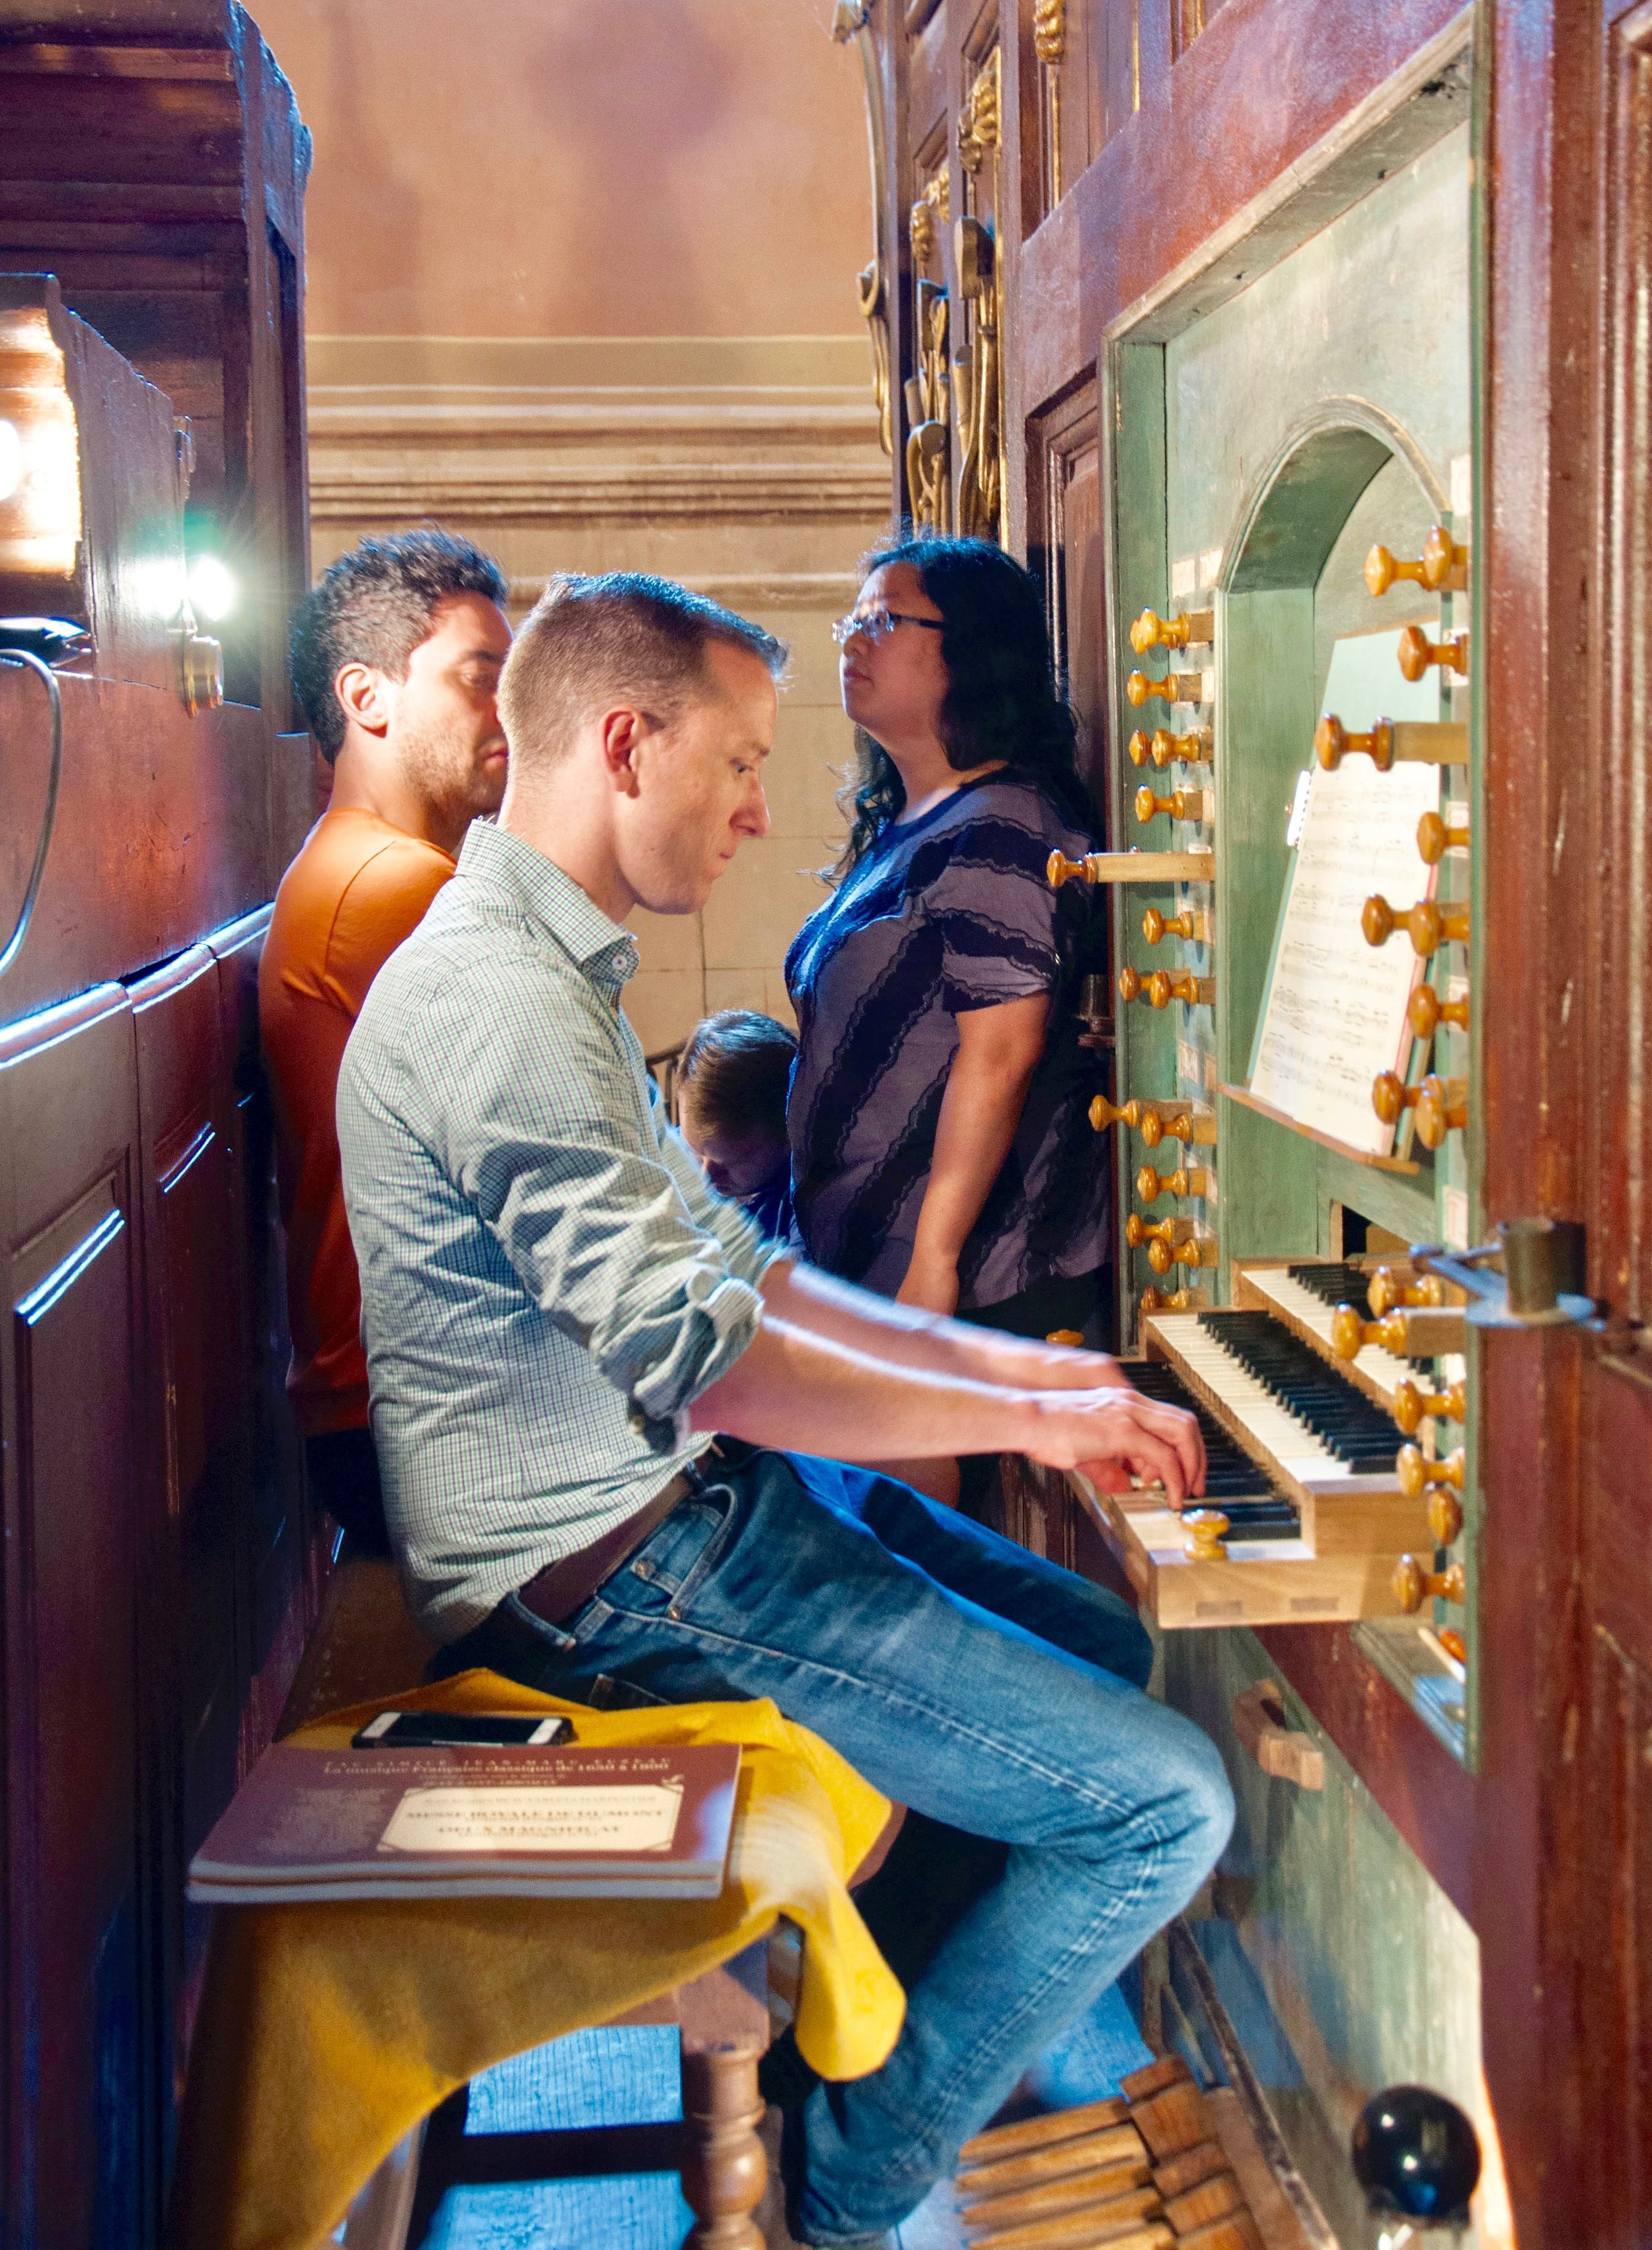 Christian Lane plays the organ built by Gregoire Rabiny